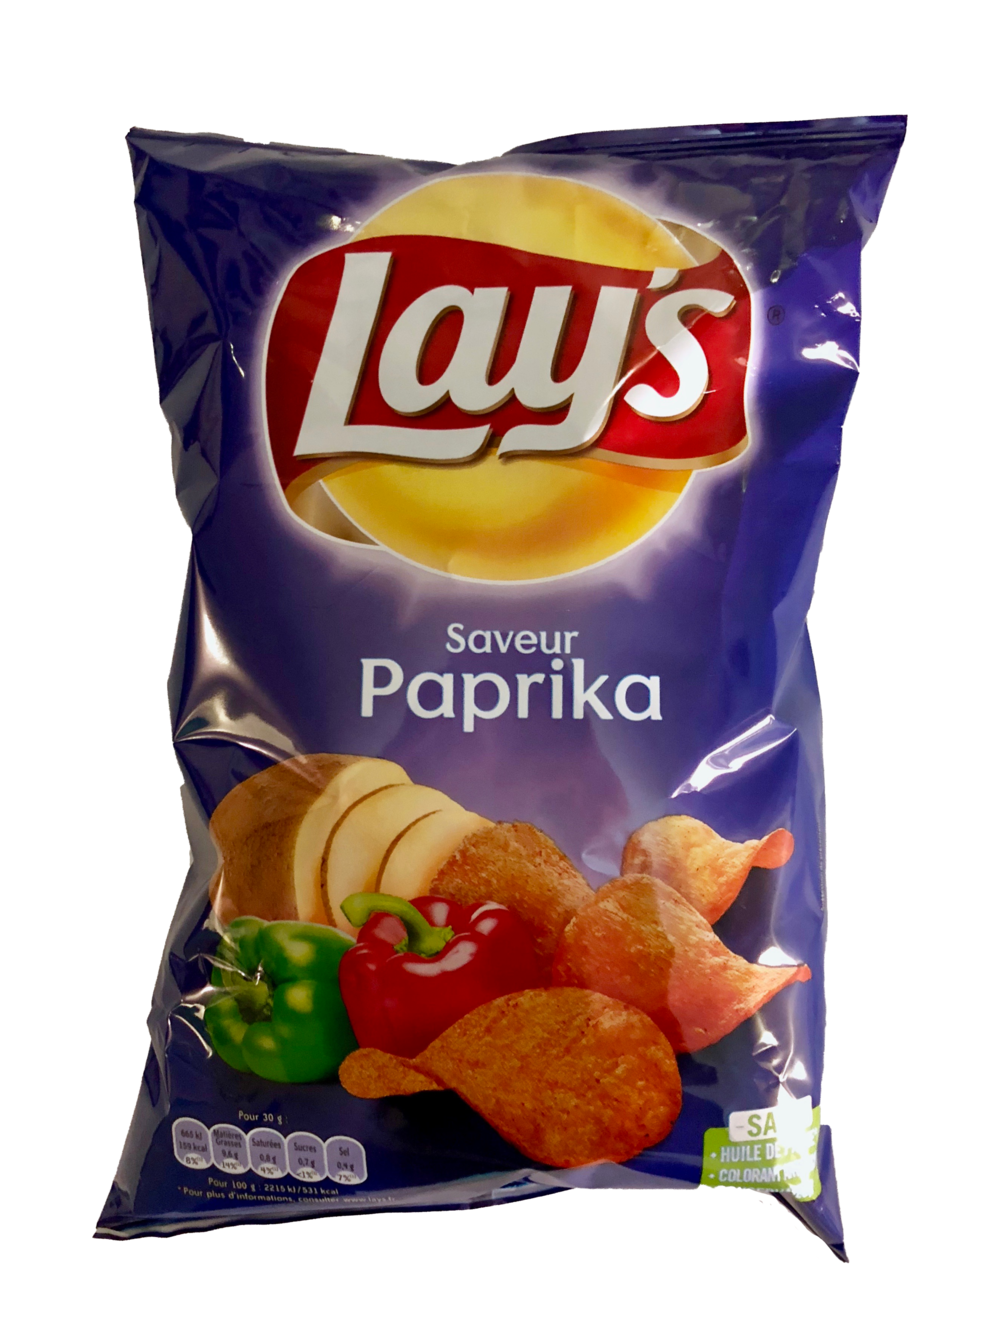 Charise's Favorite - I liked these a lot too. They sound weird, but they're the best barbecue chip you'll ever have.